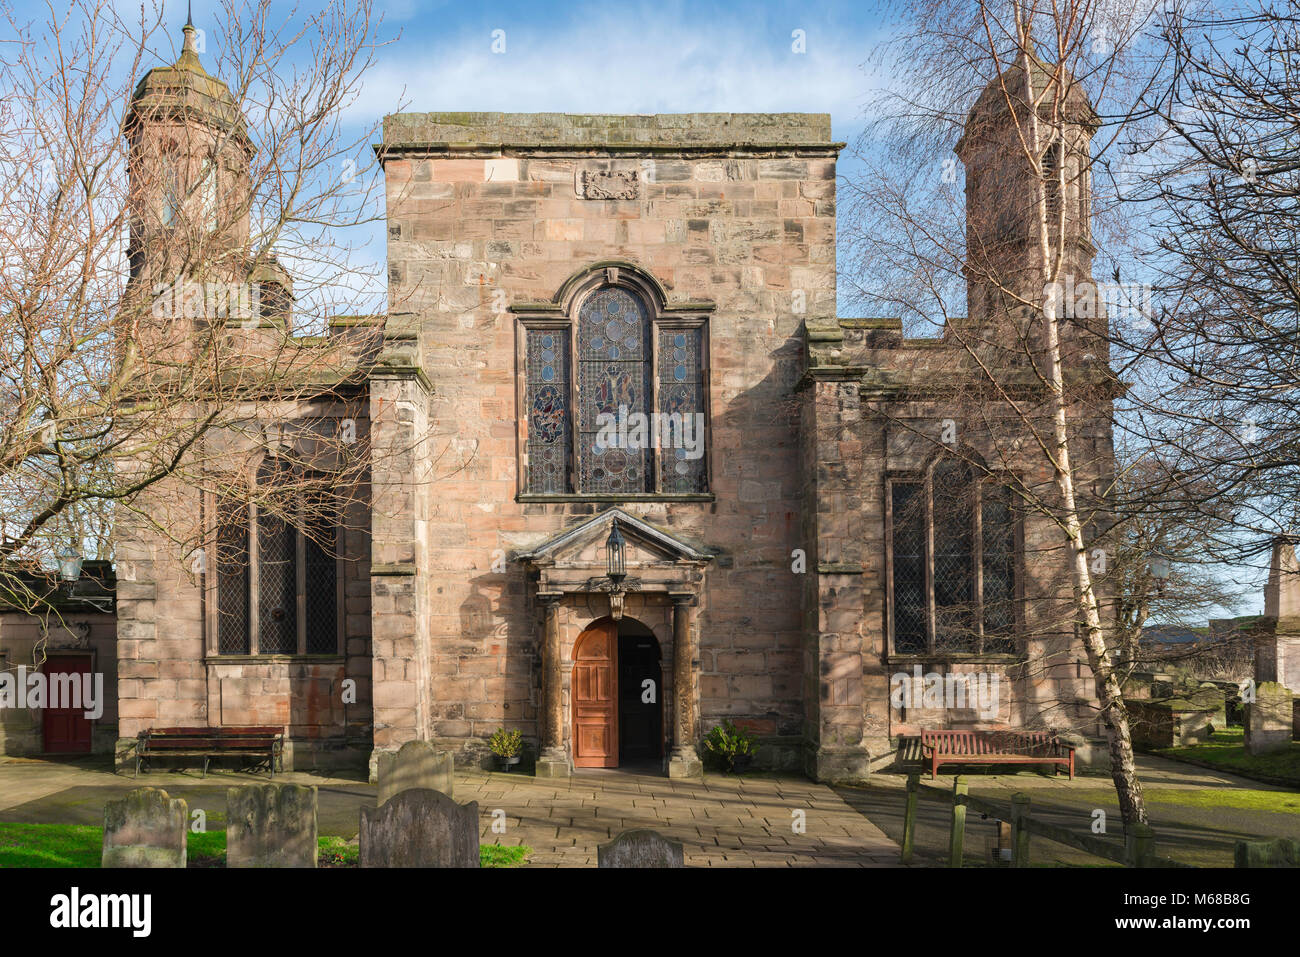 Berwick upon Tweed church,view of the entrance to the Holy Trinity Parish Church in the border town of Berwick upon - Stock Image